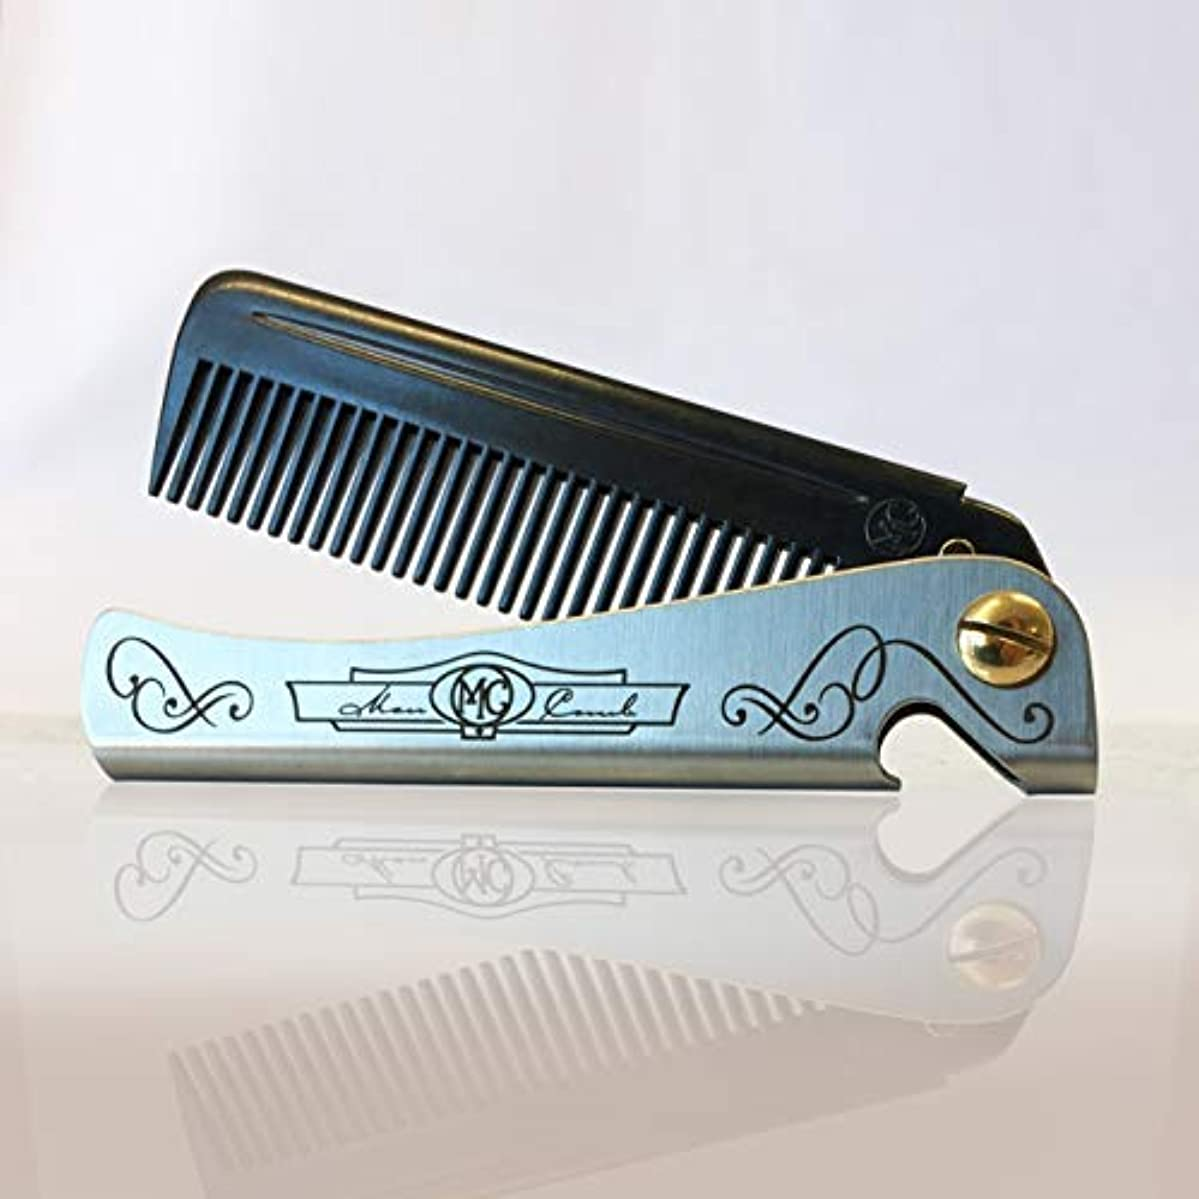 New 'Carbon' Man Comb. A seriously strong folding comb and bottle opener. [並行輸入品]